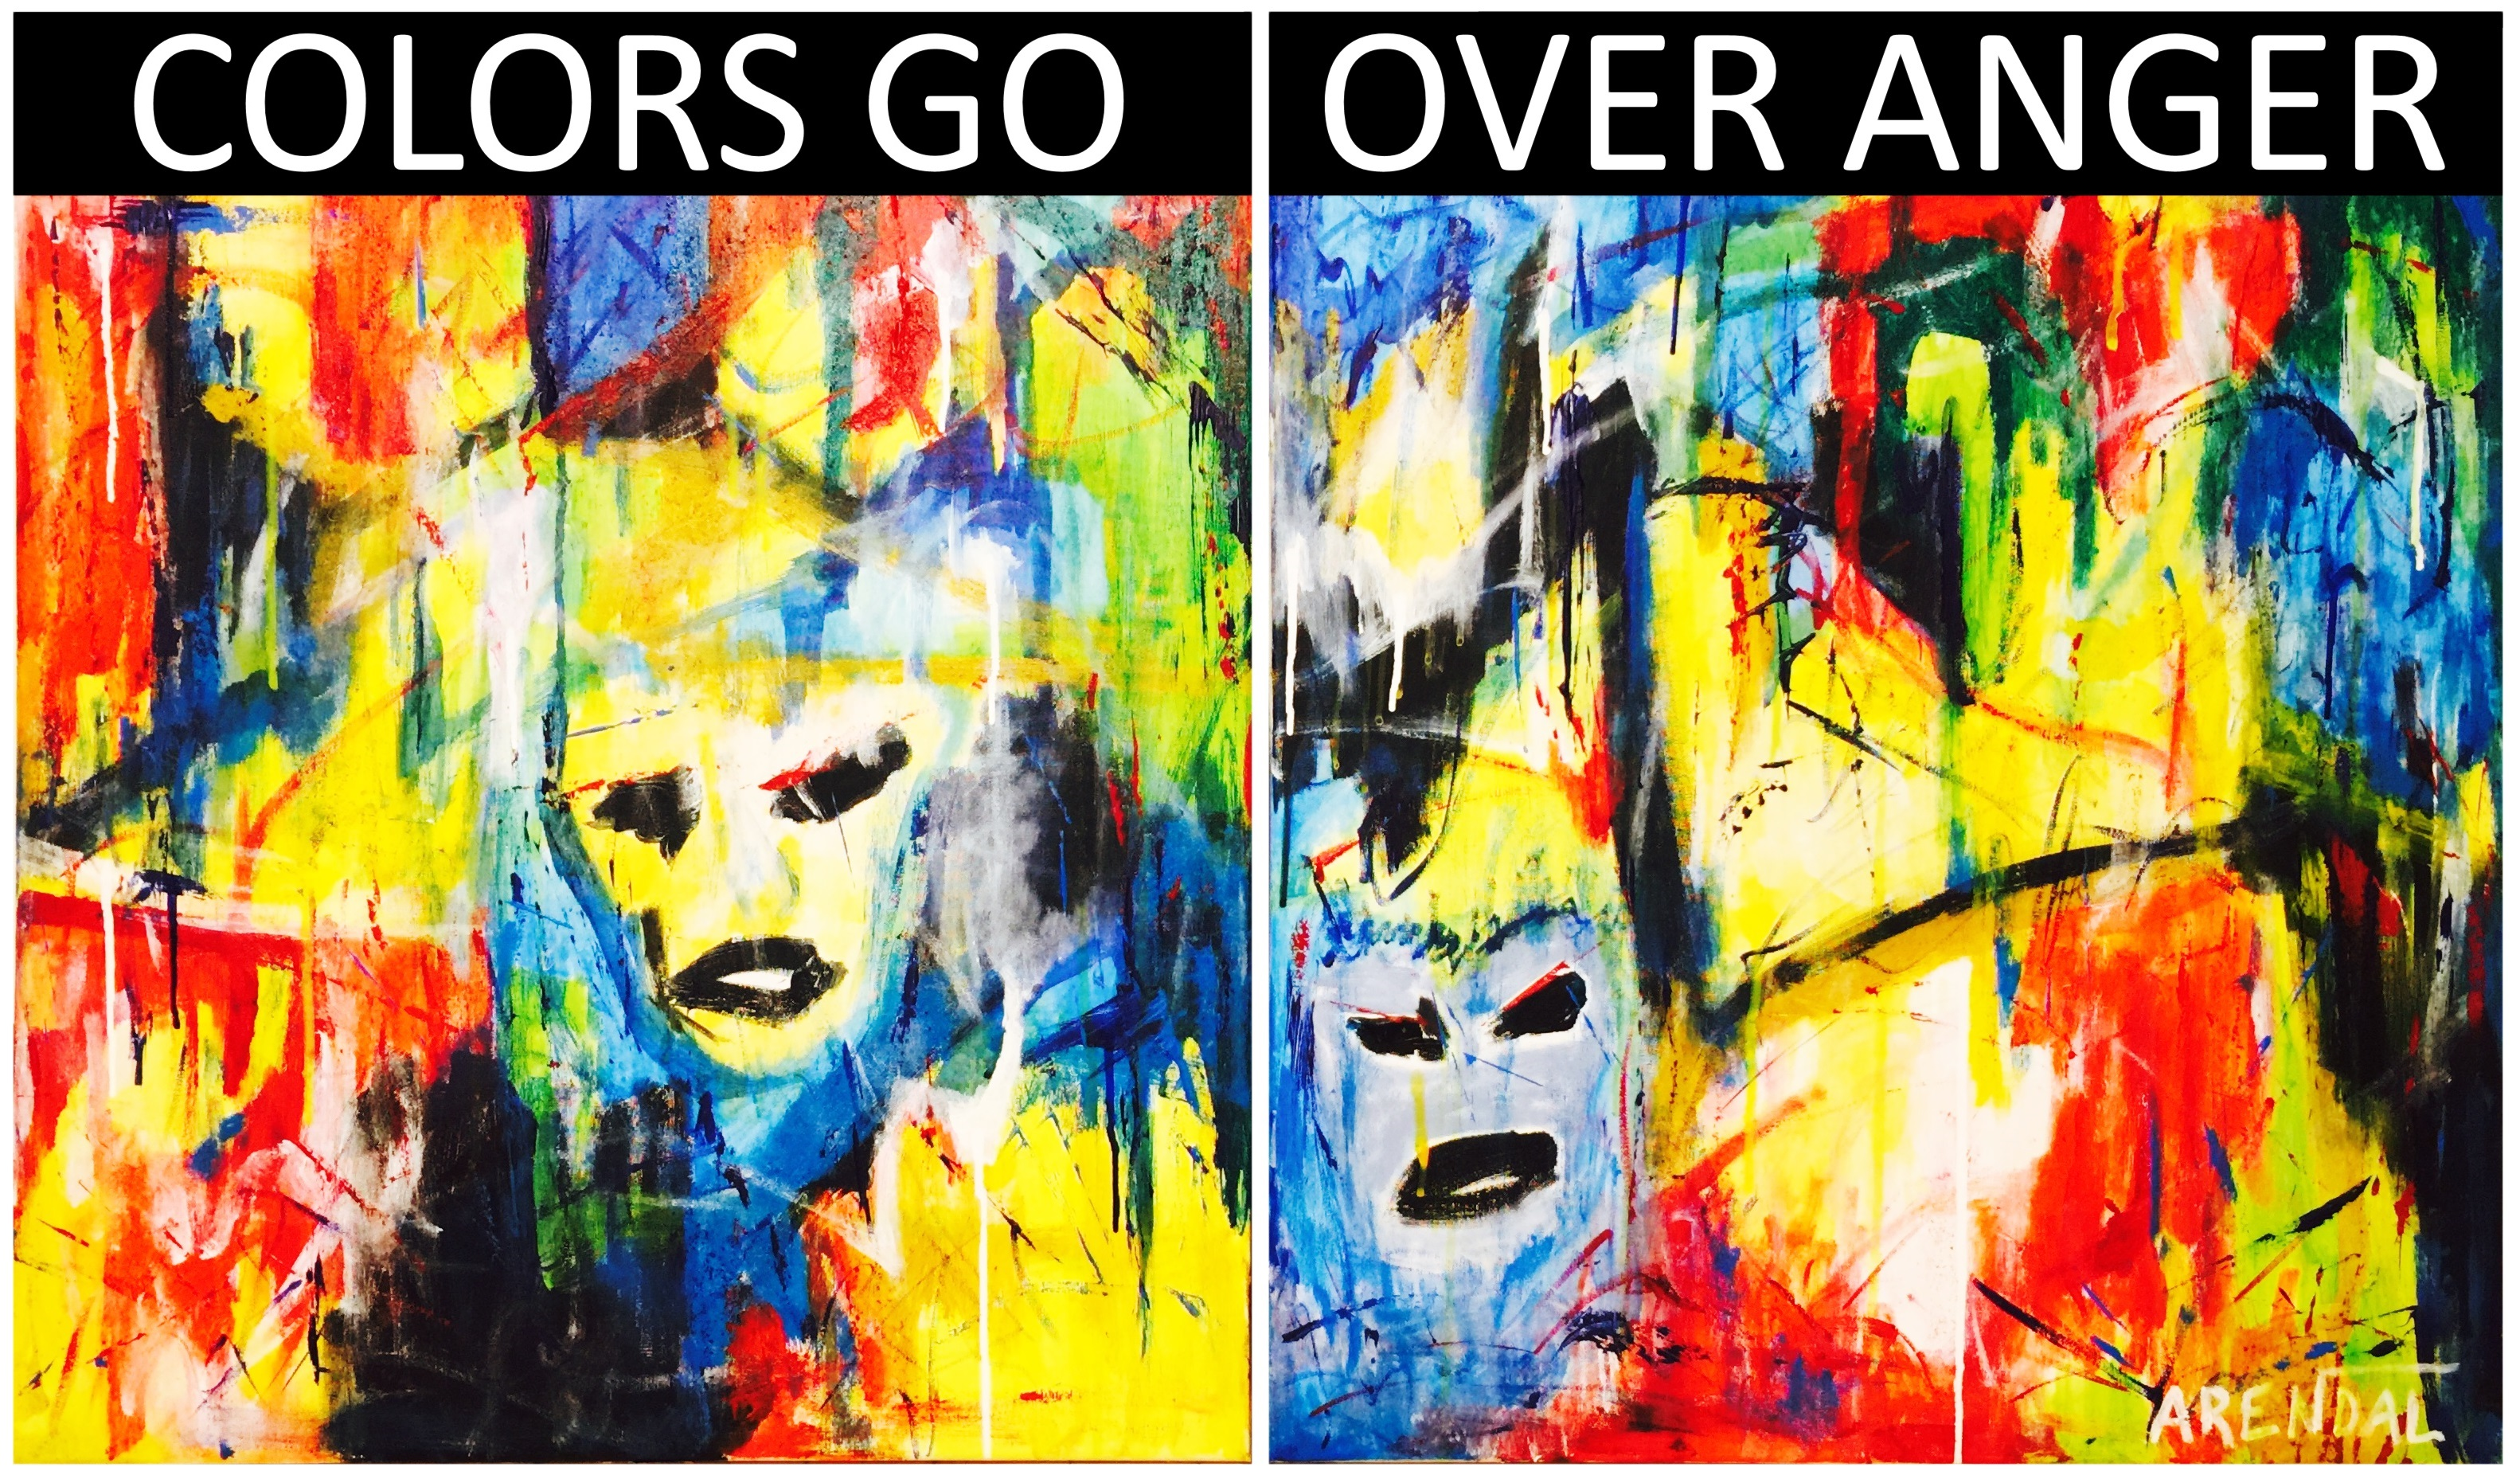 Colors Go Over Anger